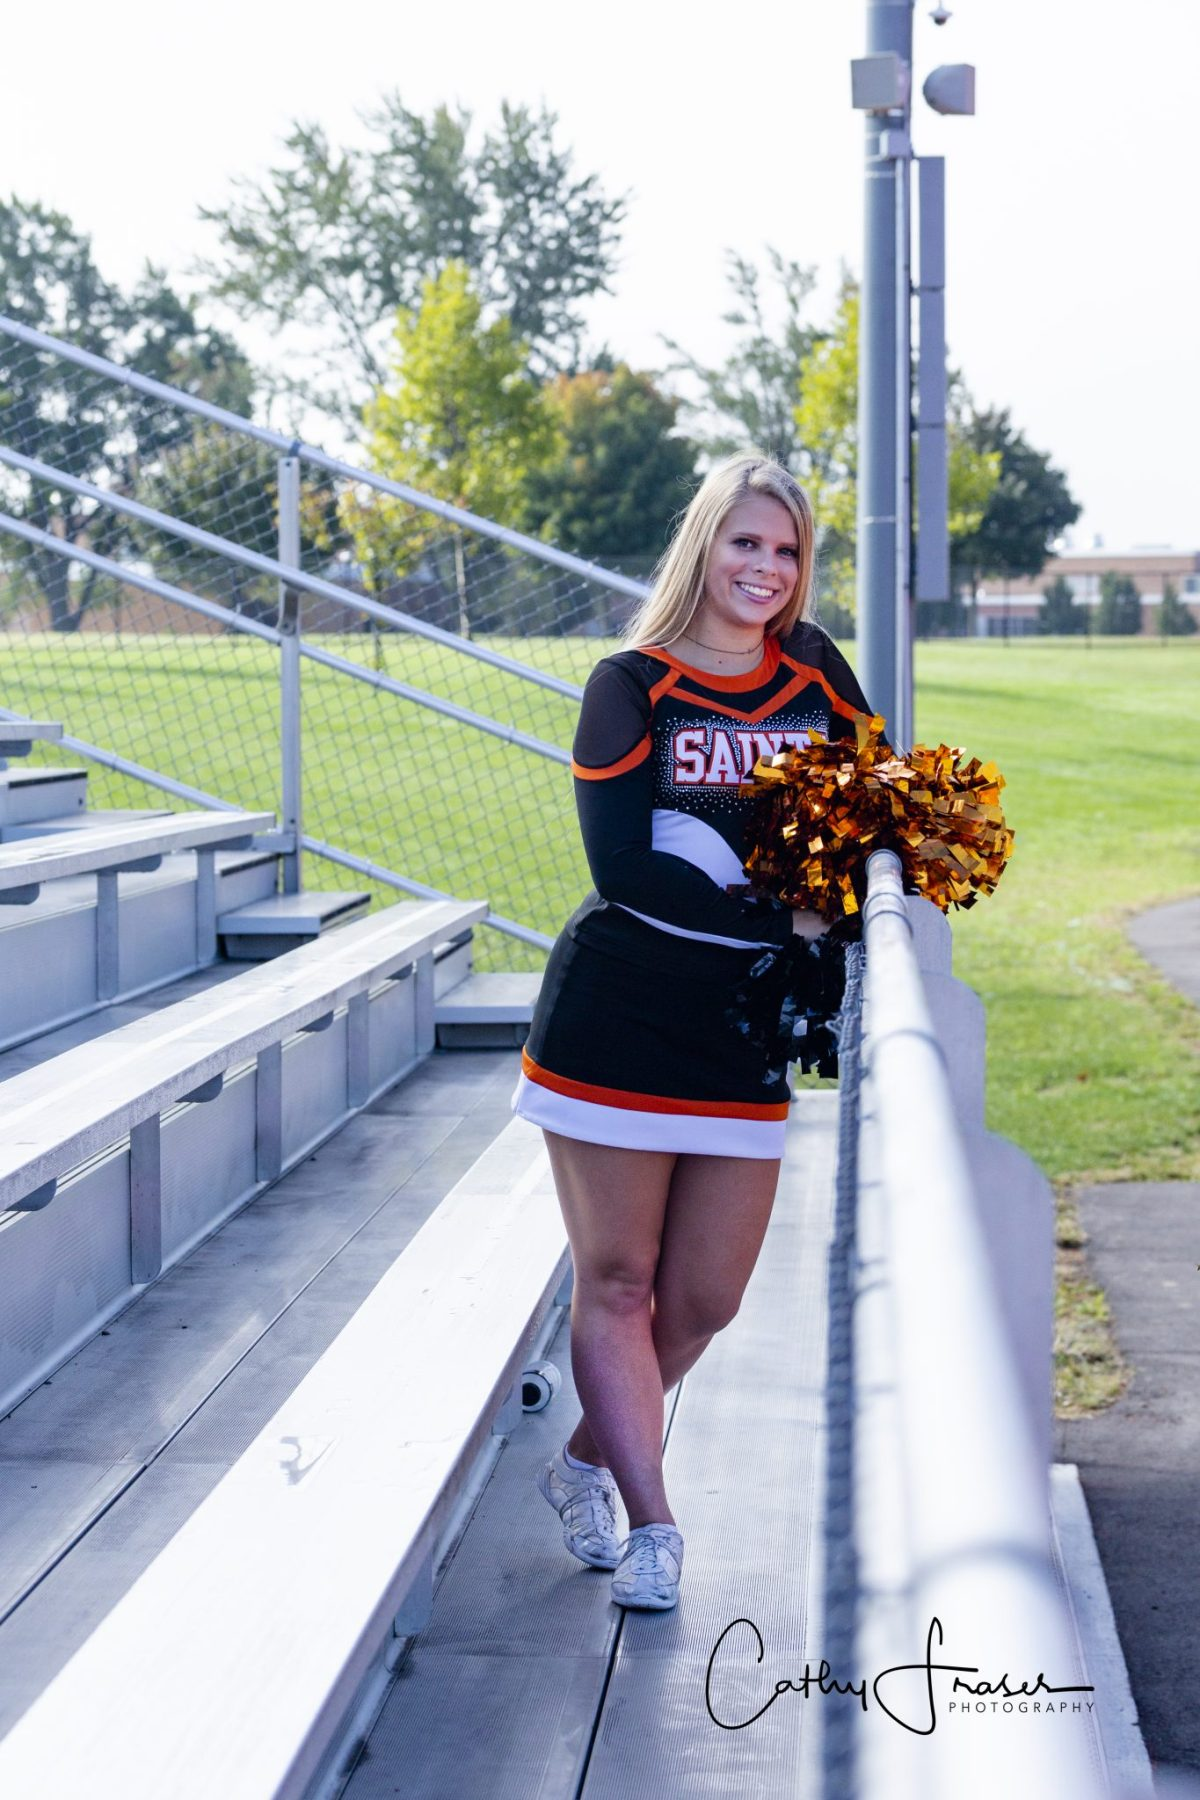 senior pictures, professional headshot, professional senior photos, Churchville, New York, cheerleader, professional cheerleading pictures